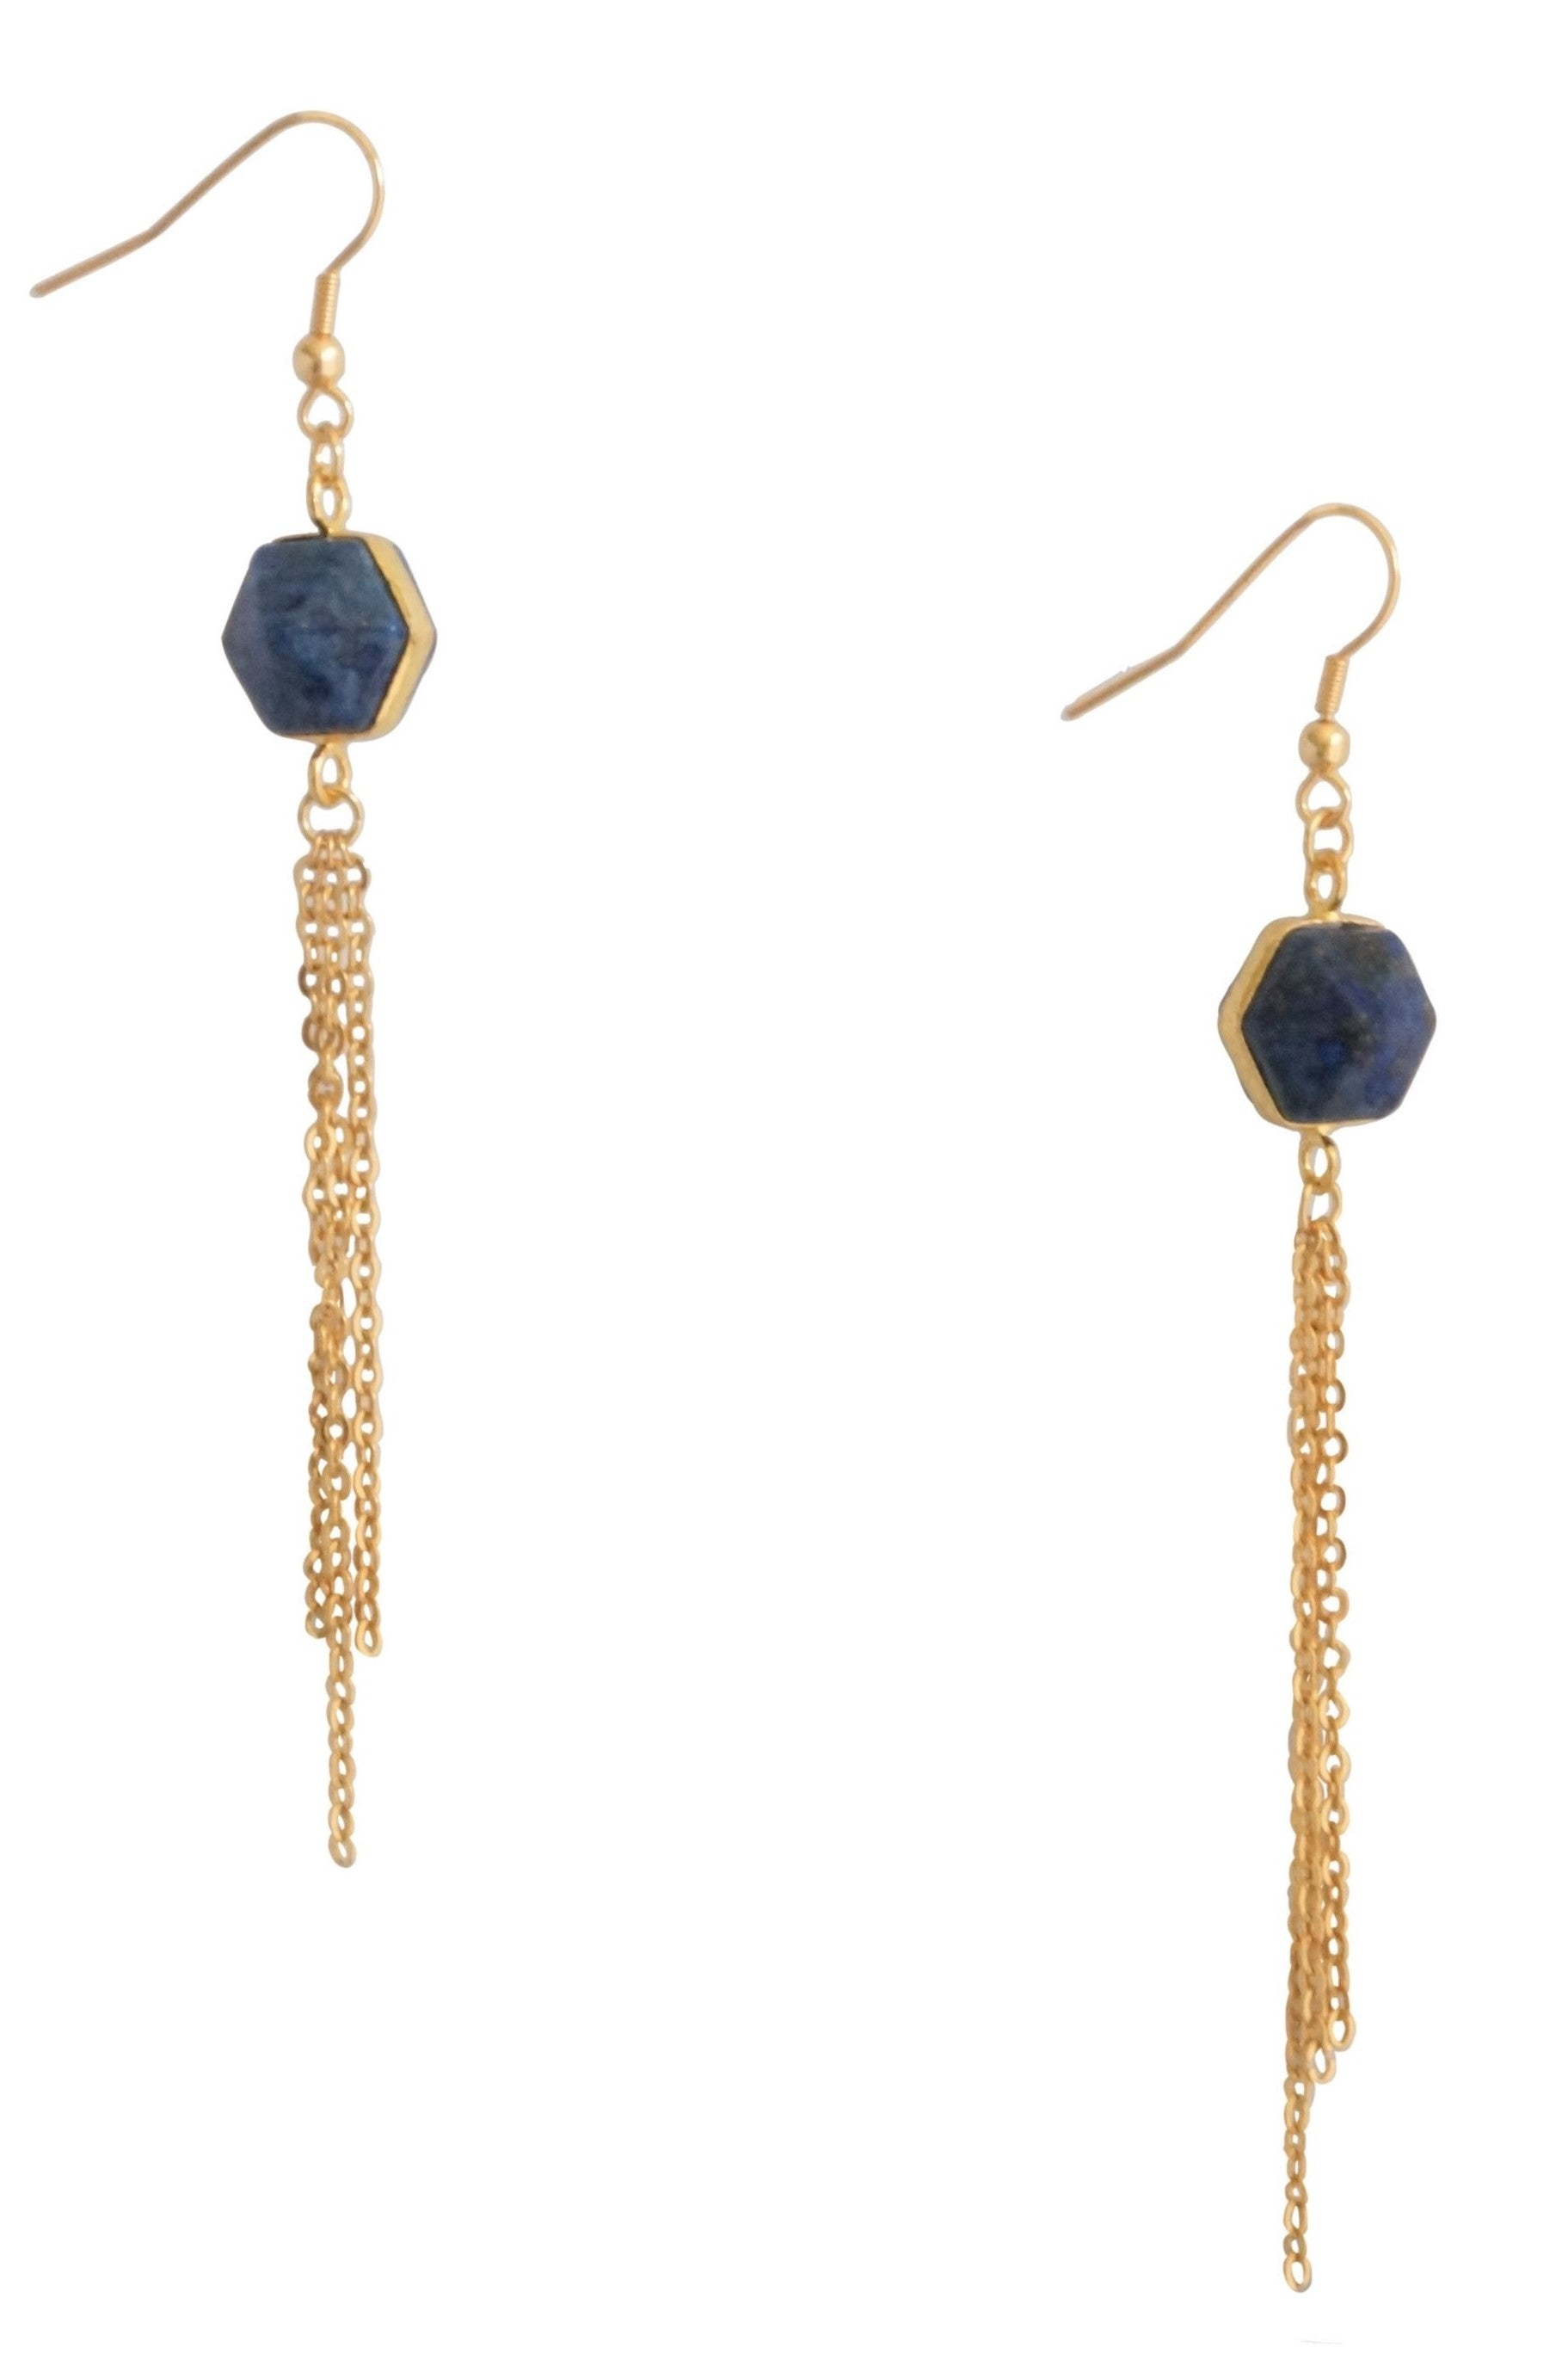 Connection Earrings